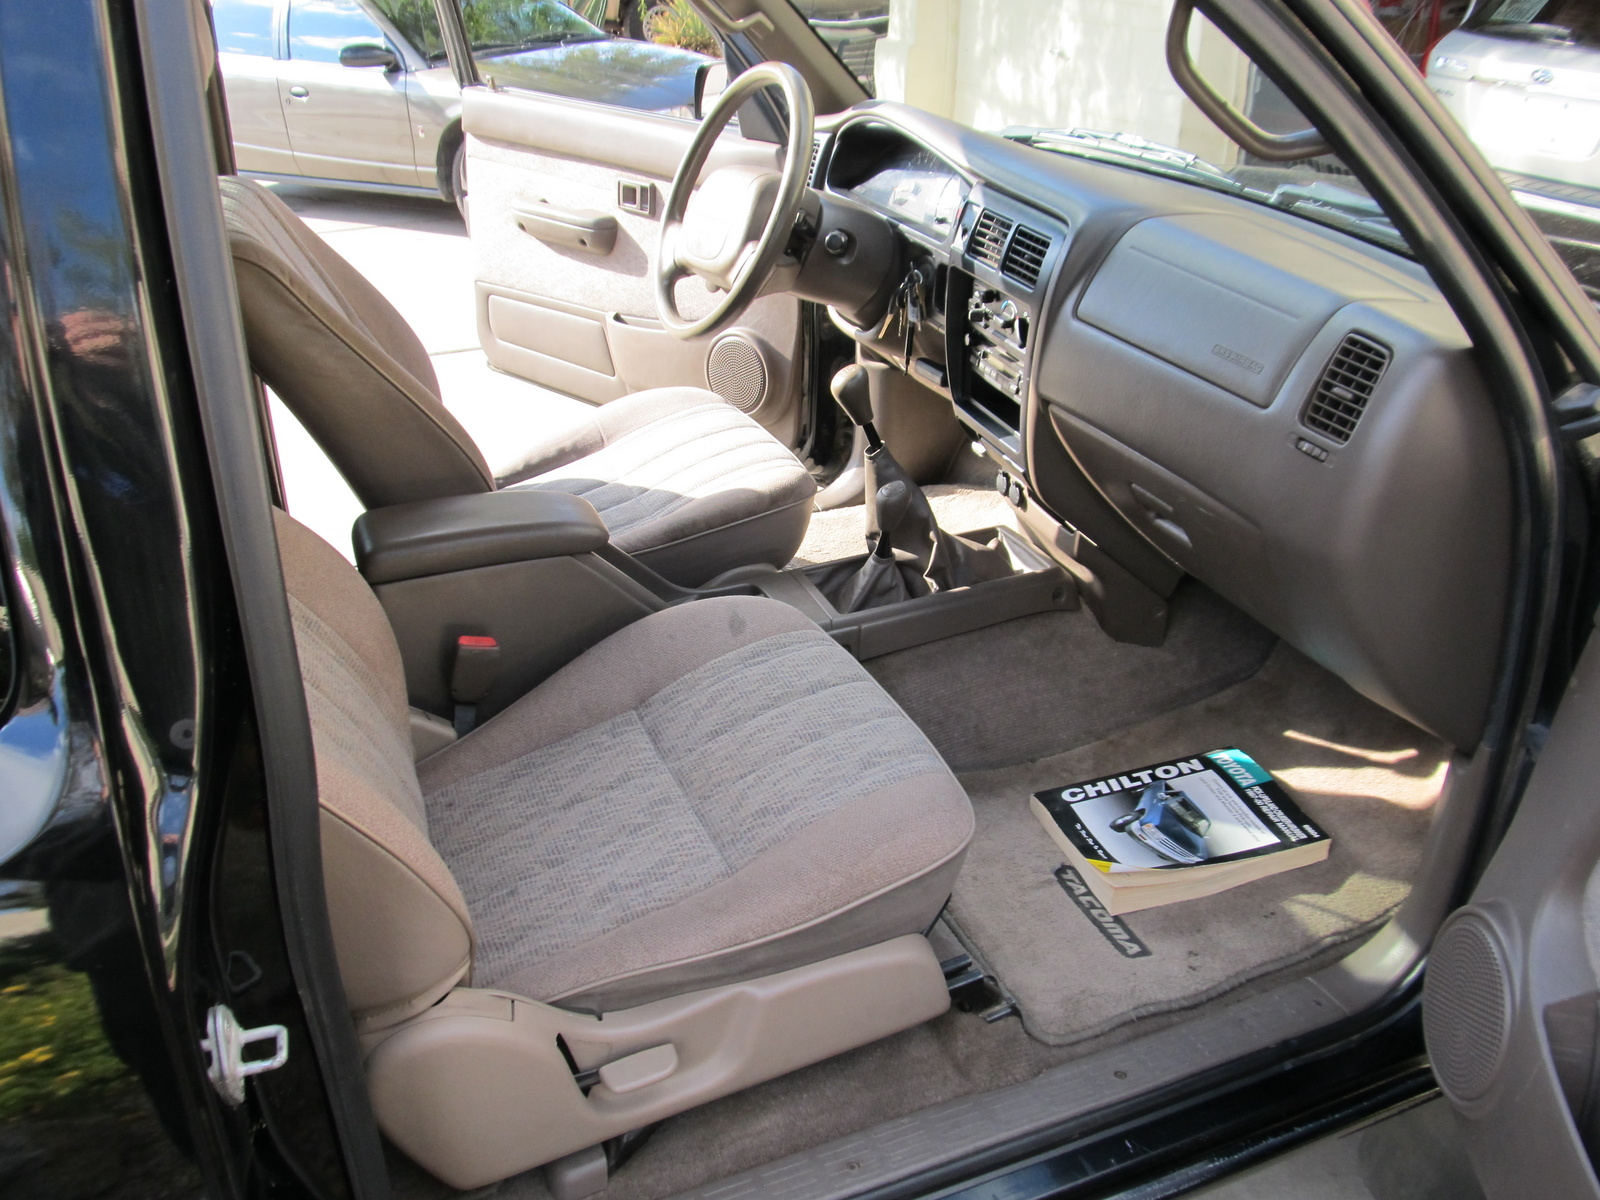 1999 Toyota Tacoma Interior Parts Www Indiepedia Org